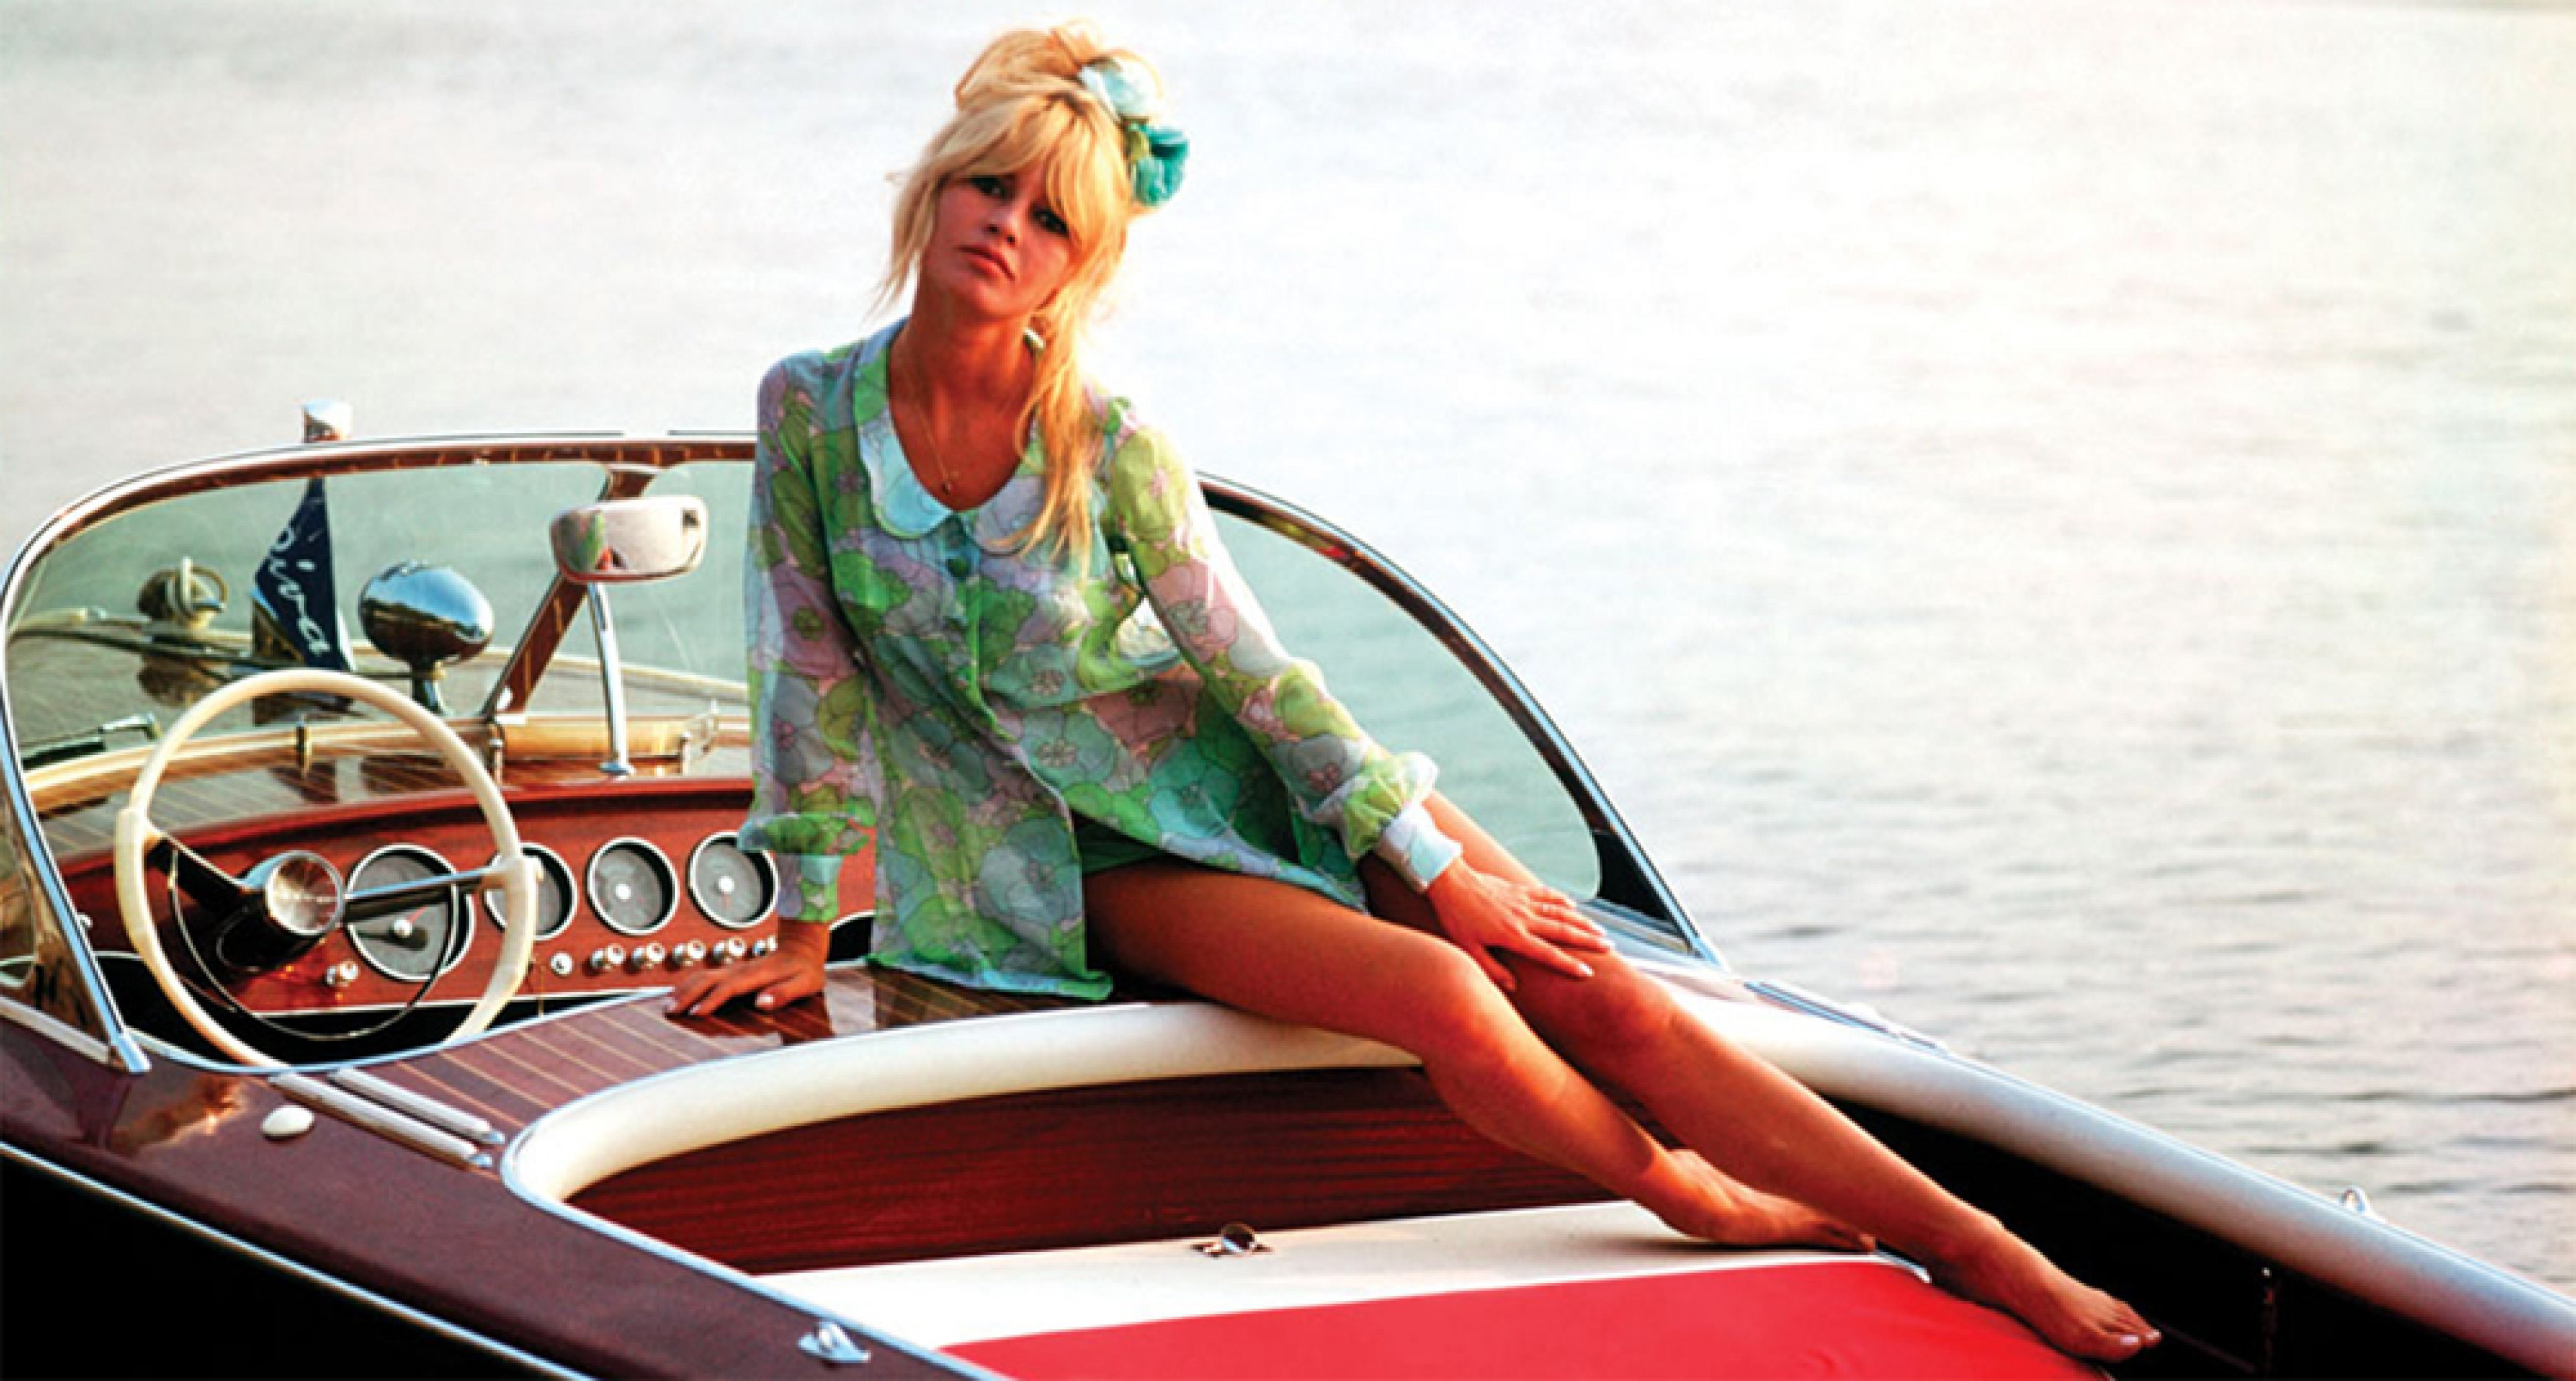 Brigitte Bardot with her Nounours in St Tropez in 1962. Courtesy of Ghislain Dussart/Gamma Rapho/Ghetty Images